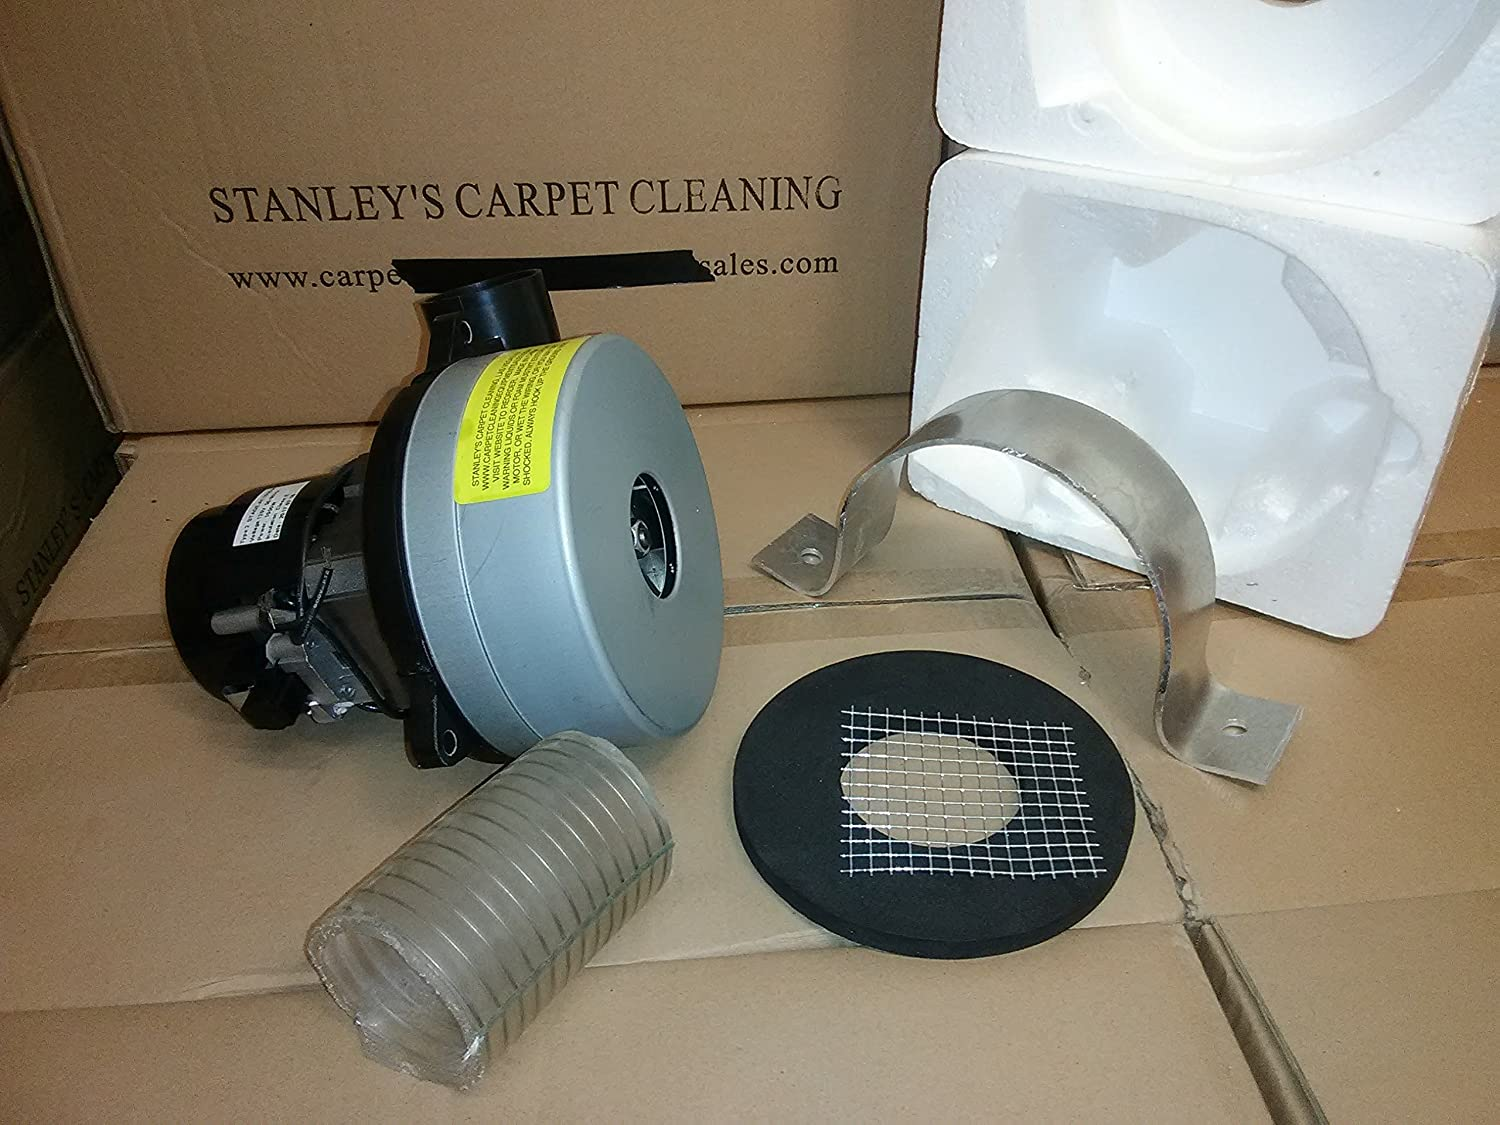 Stanley's Carpet Cleaning Boat Lift Blower Motor hydrohoist- Summerset -Shore Master -galva Foam Boat Lift Replacement Vacuum Blower Motor Complete ametek